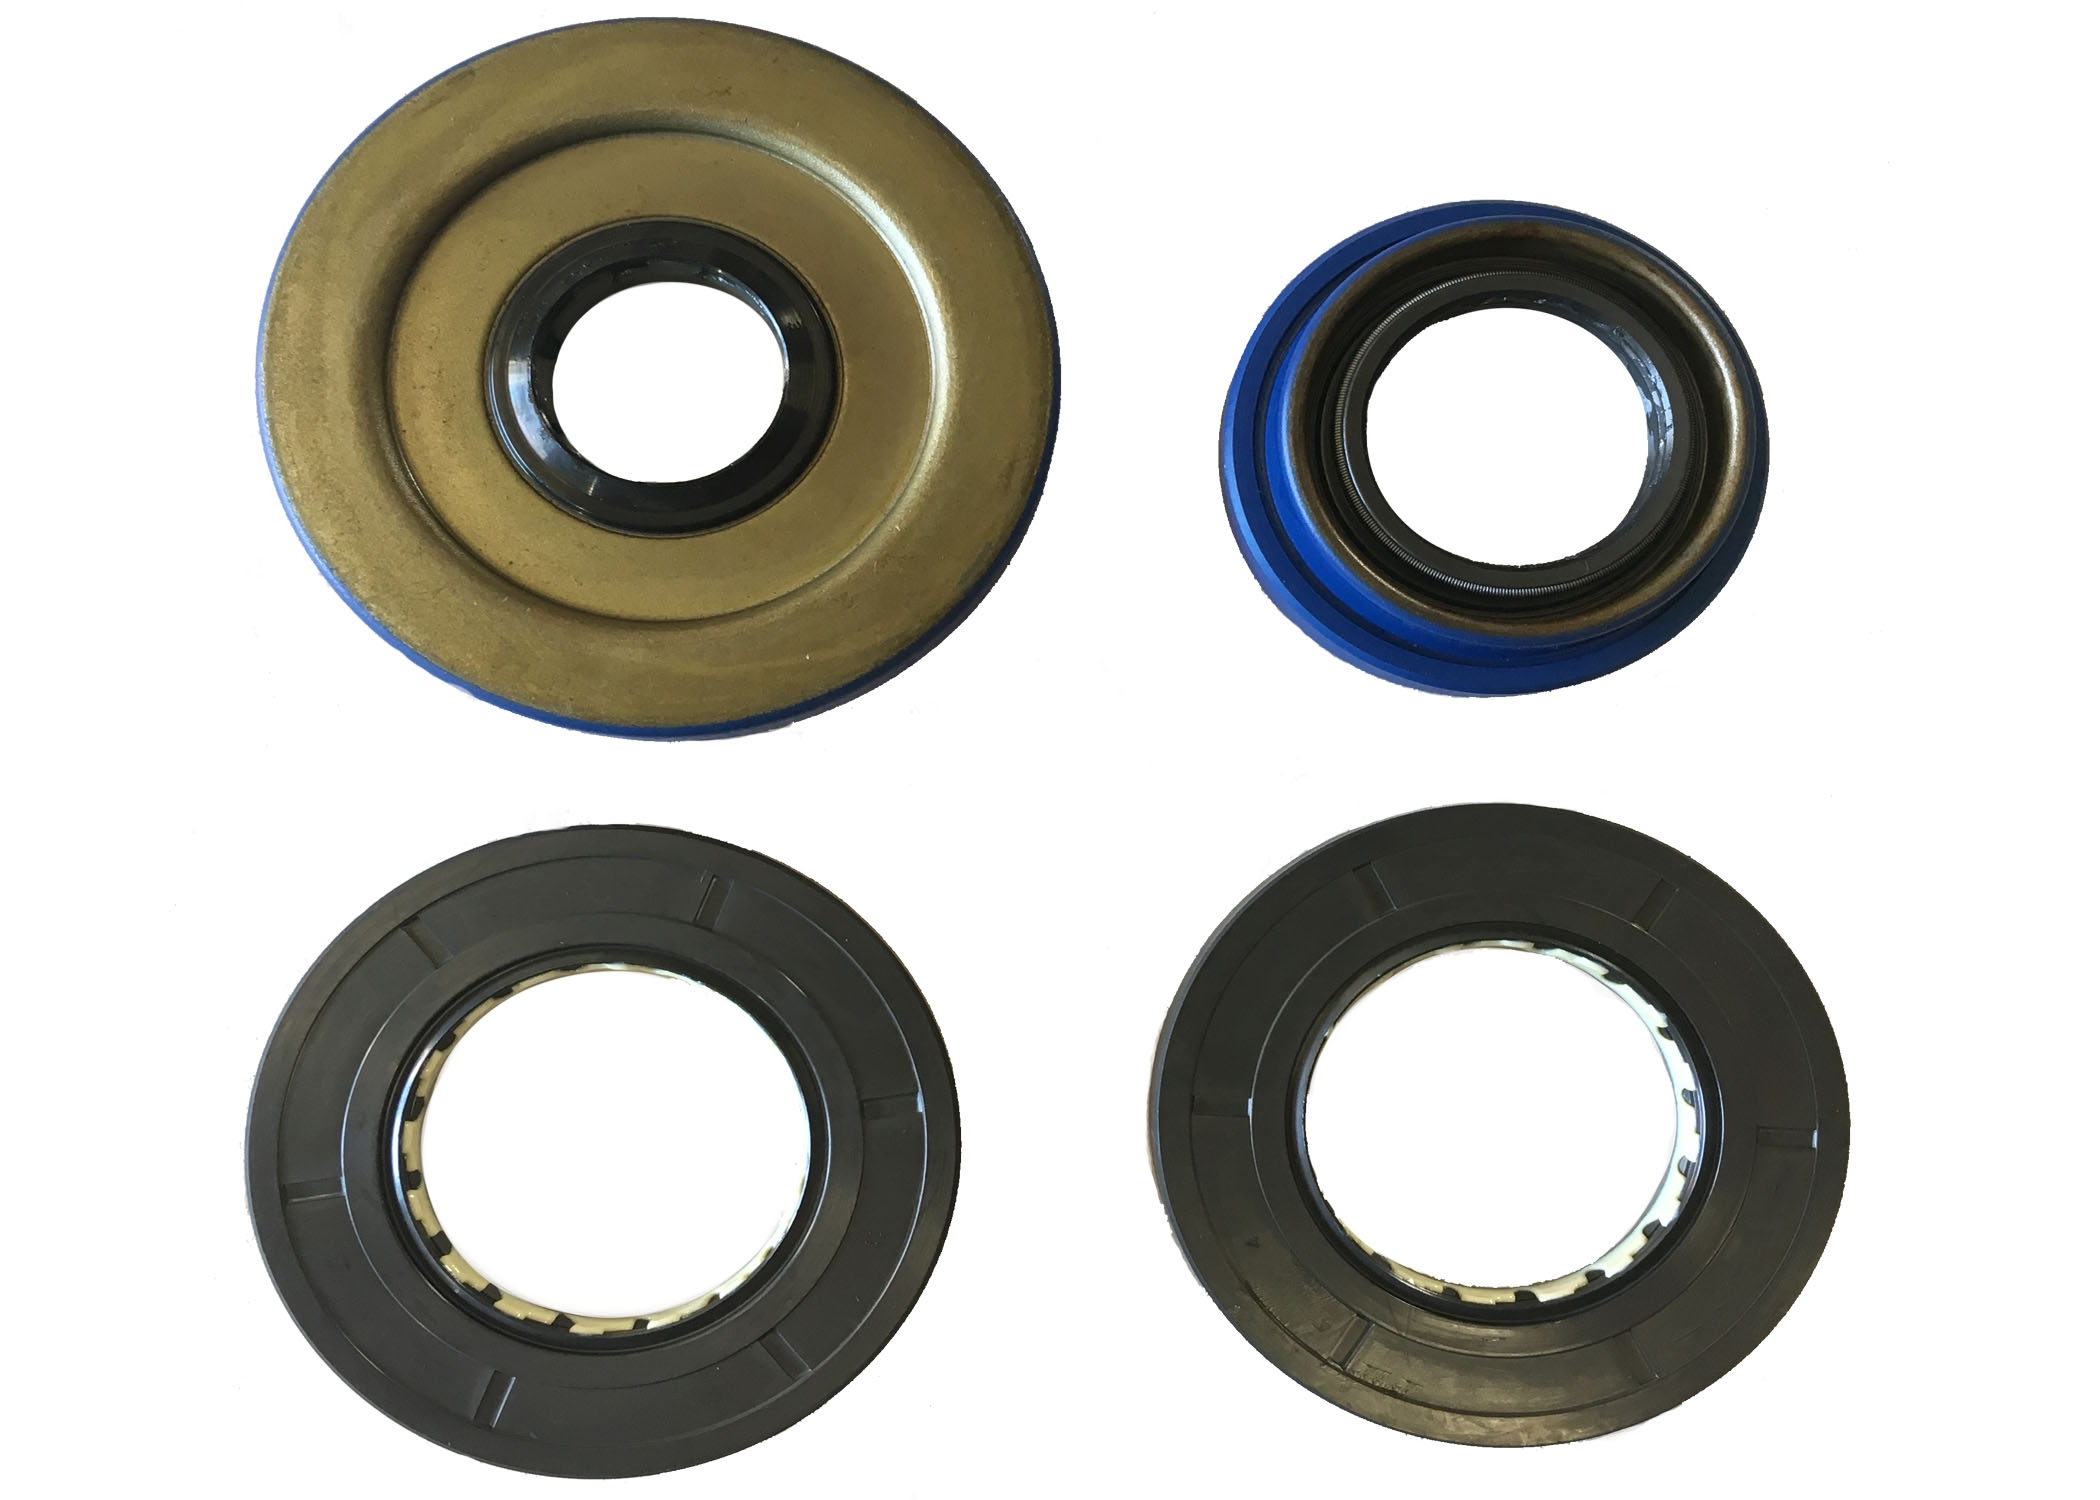 Sandcraft Motorsports - Transmission 1000 XP Seal Kit